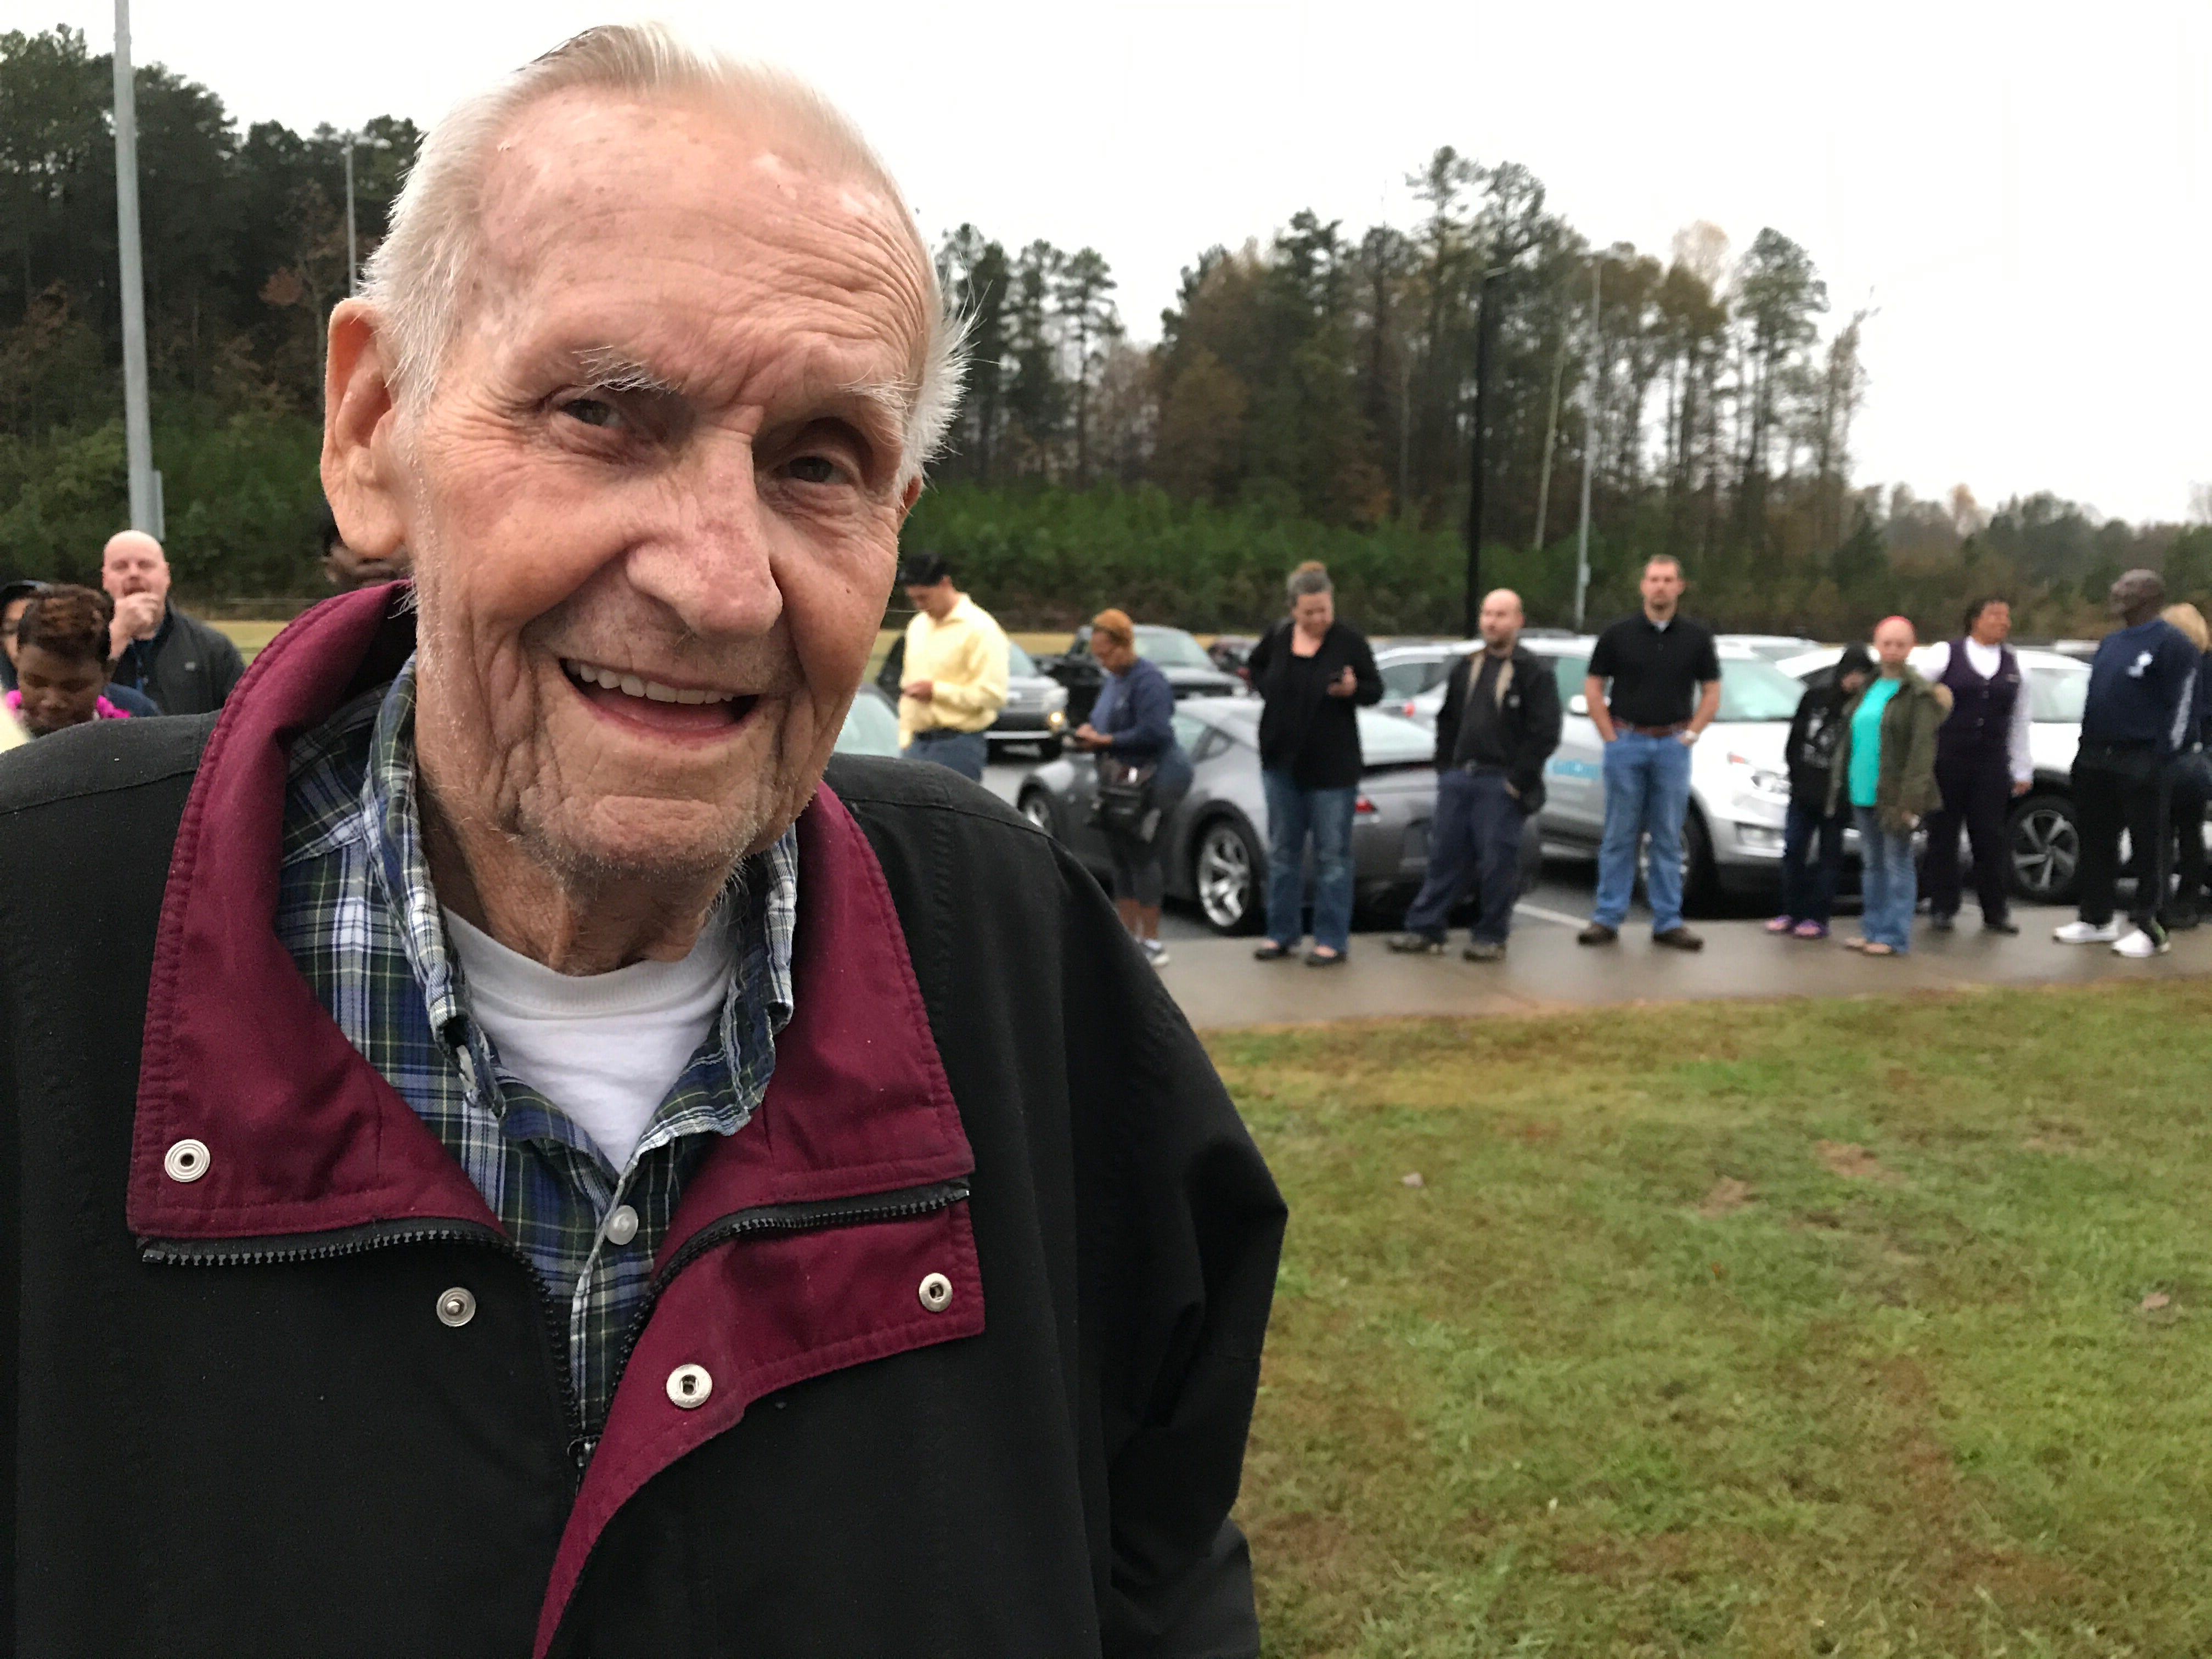 Perry Wilson, 85, said he cast his first ballot for President Dwight Eisenhower in 1952. He's been voting every election since. Here he is on Tuesday, Nov. 6, 2018, at the Powdersville precinct.